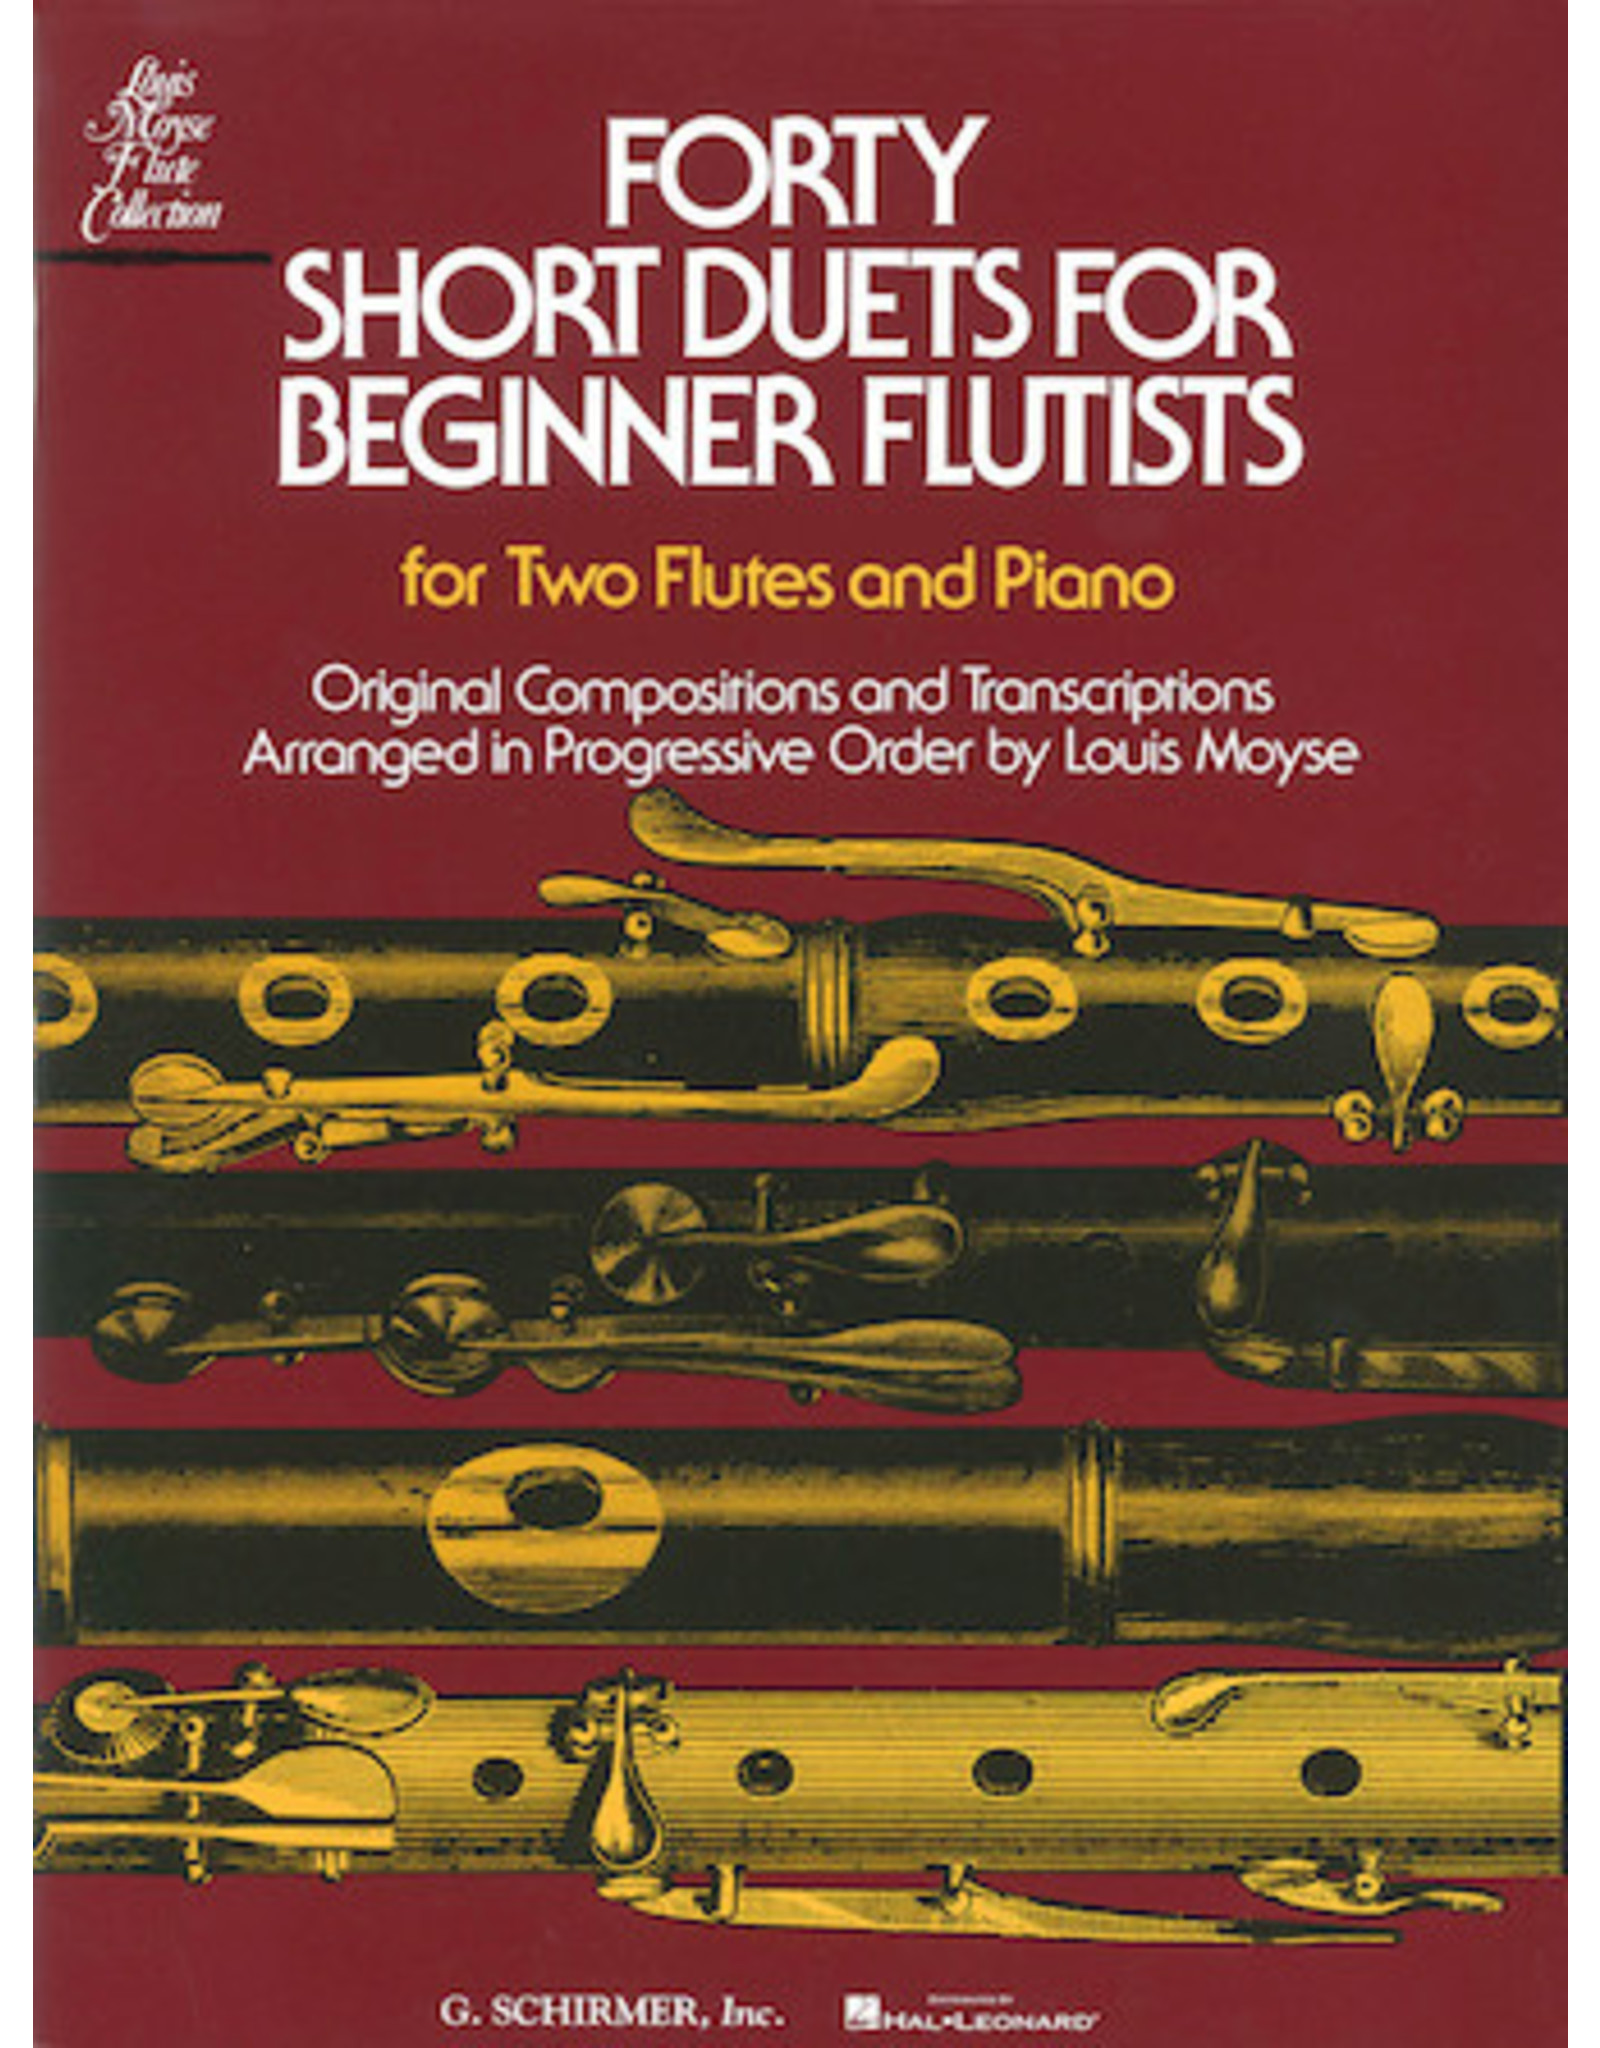 Hal Leonard Forty Short Duets for Beginner Flutists for Two Flutes & Piano arranged by Louis Moyse Woodwind Ensemble